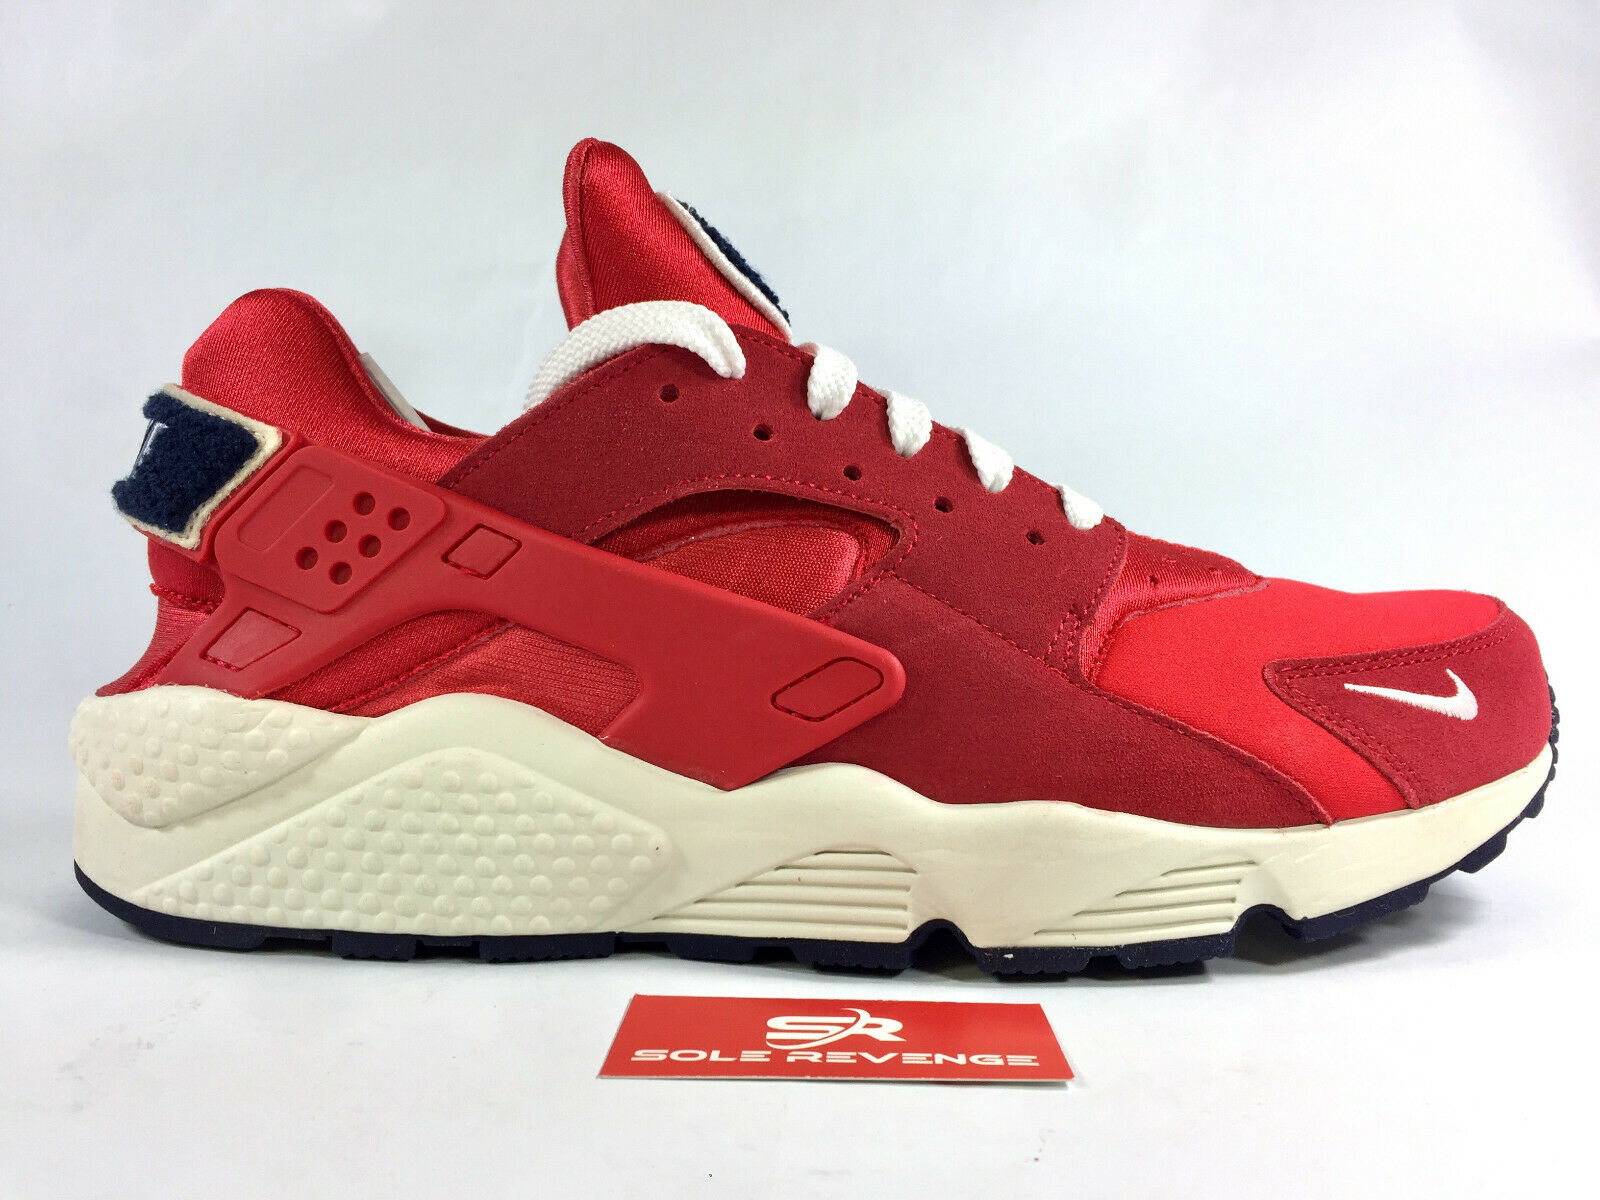 NIKE AIR HUARACHE 704830-602 University Red Sail Blackened bluee Premium Varsity